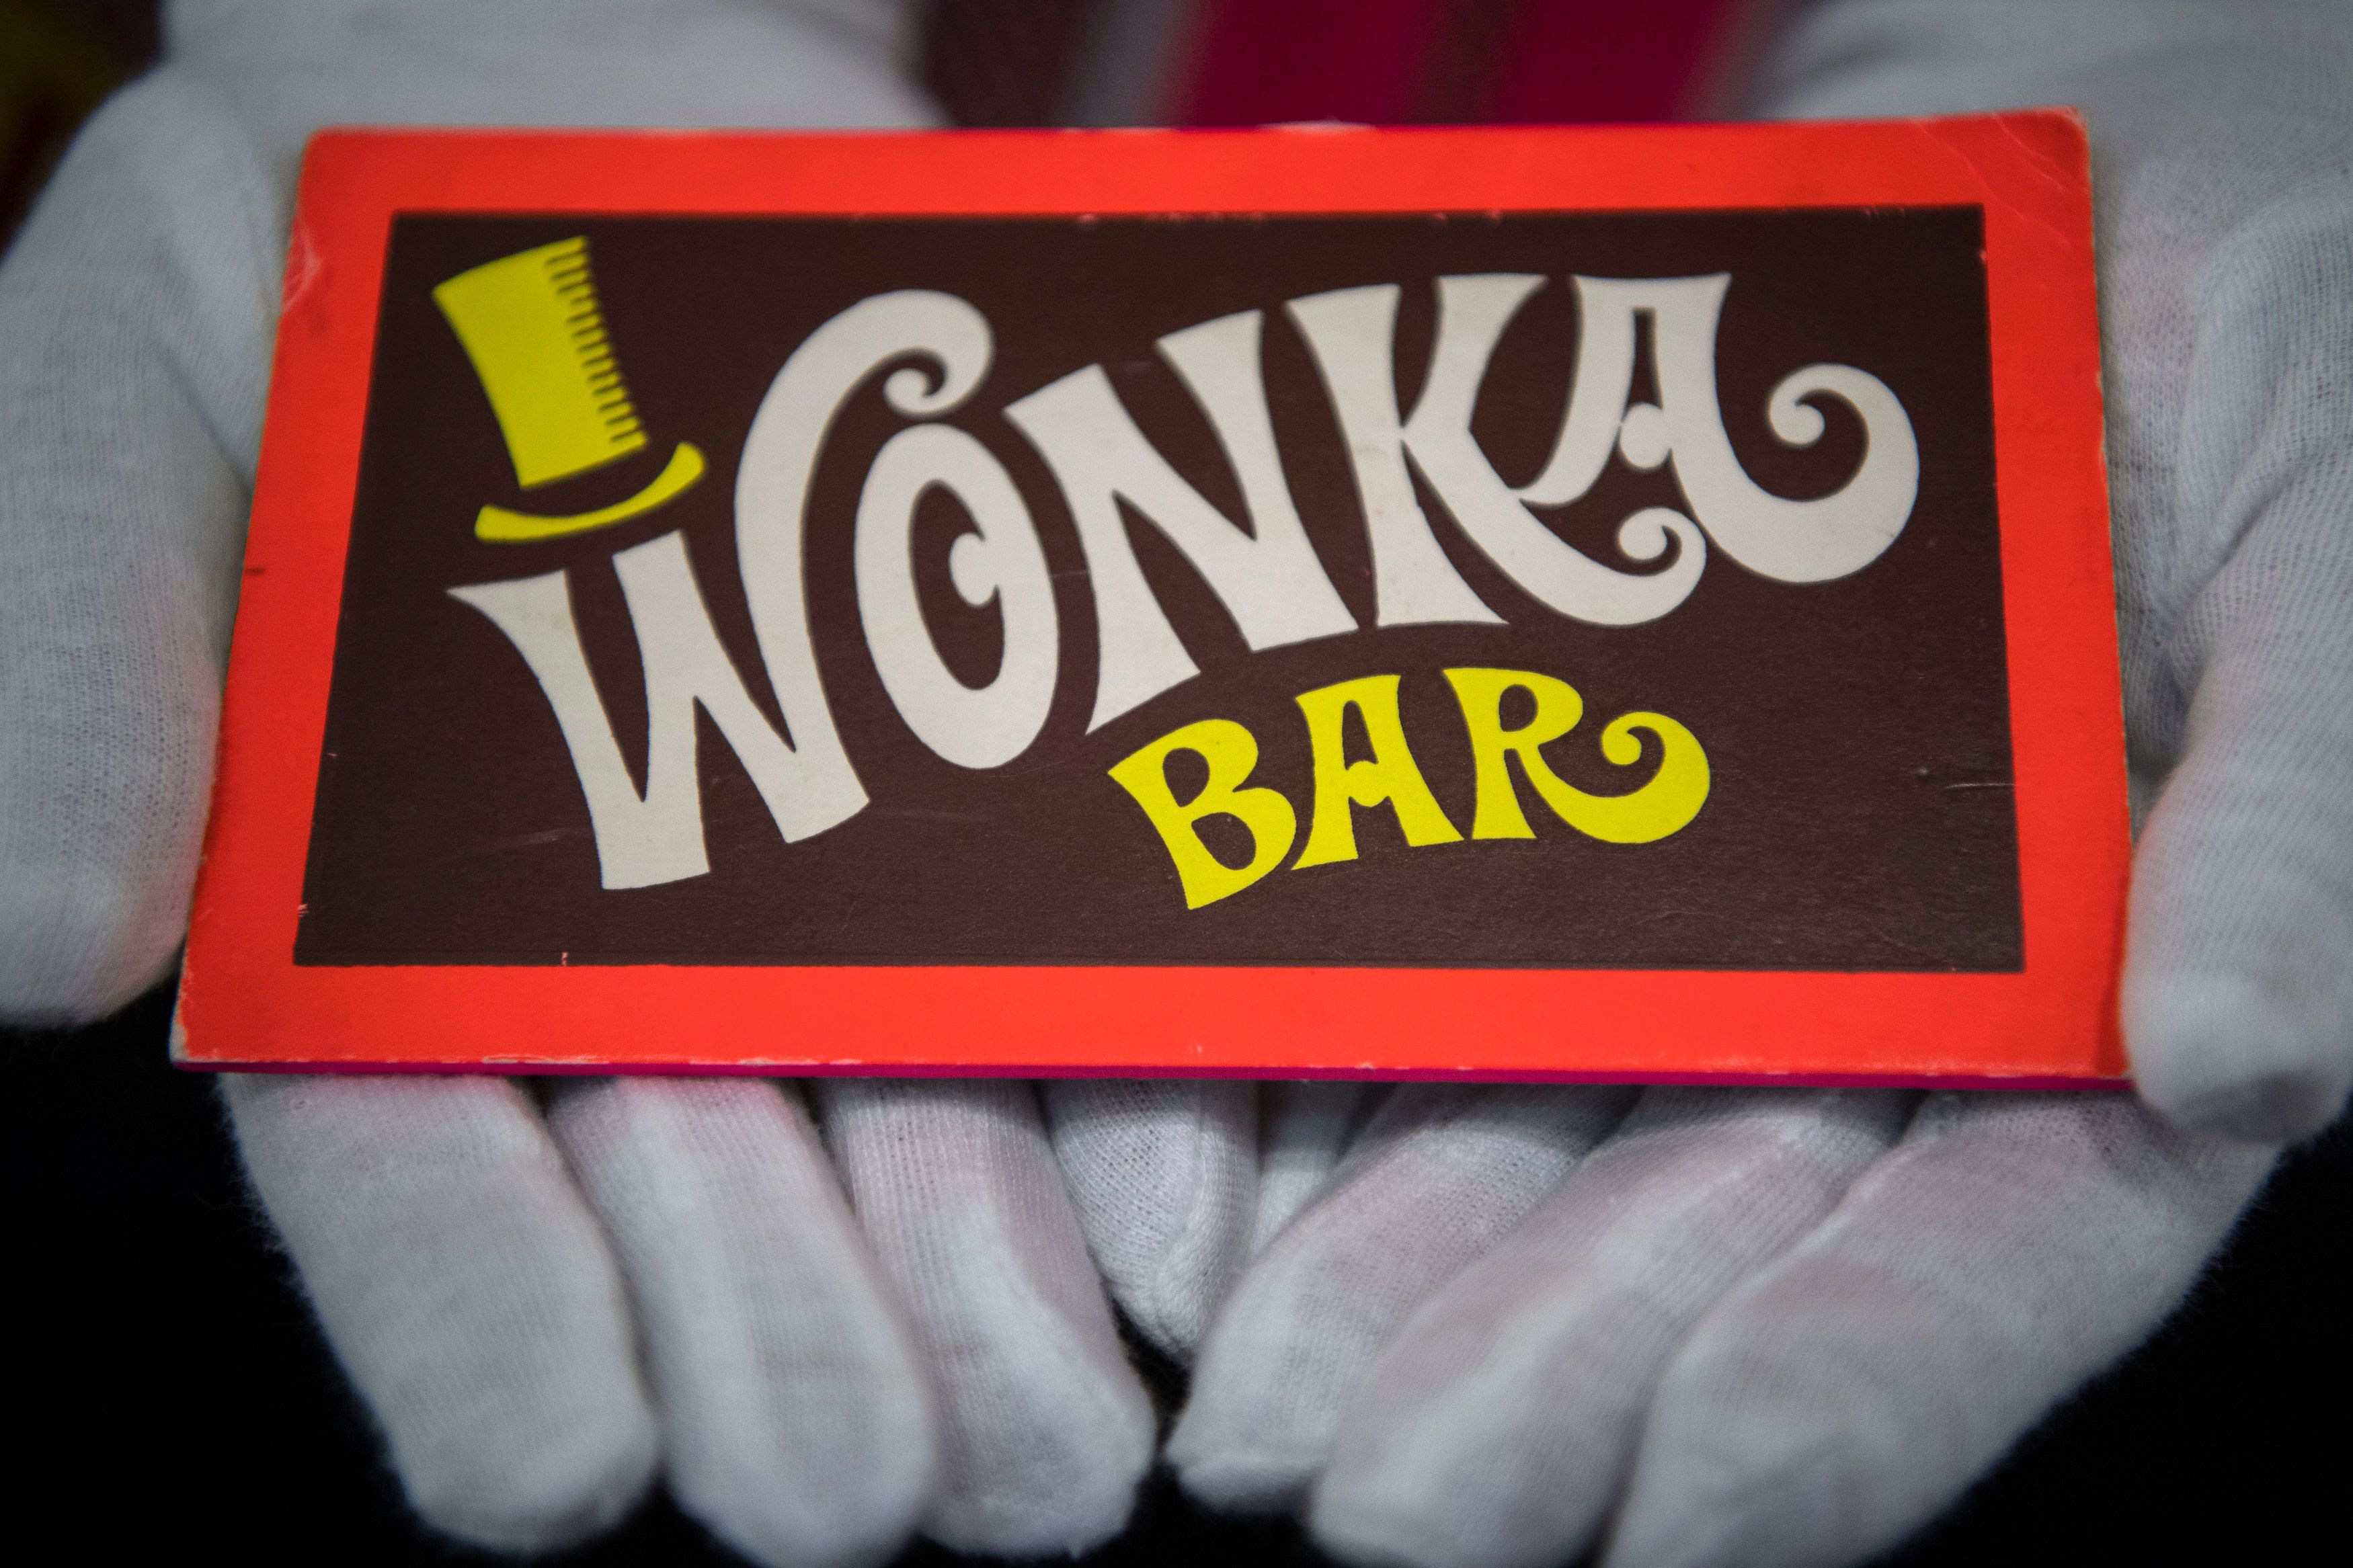 A Wonka Bar from Willy Wonka and the Chocolate Factory (1997) at the Prop Store film memorabilia exhibition at the BFI IMAX at Waterloo in central London. (Photo by Victoria Jones/PA Images via Getty Images)